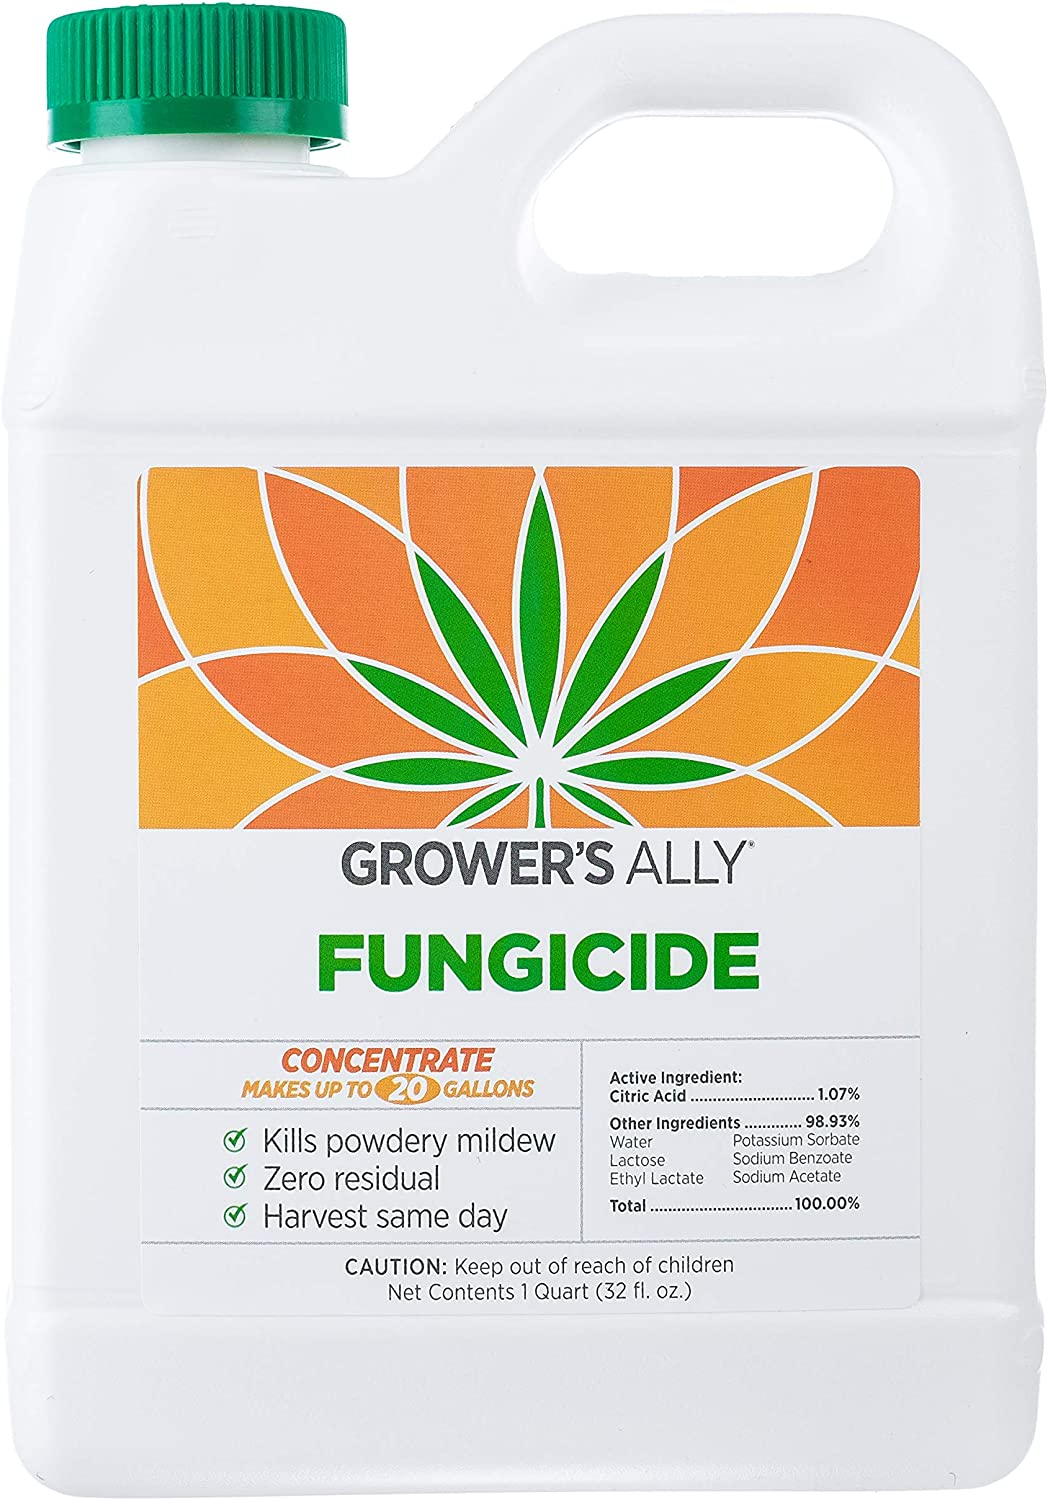 Grower's Ally Fungicide | 32 fl. oz. Concentrate, Makes 20 Gallons | Safe Fungicide and Bactericide for Plants | OMRI Listed